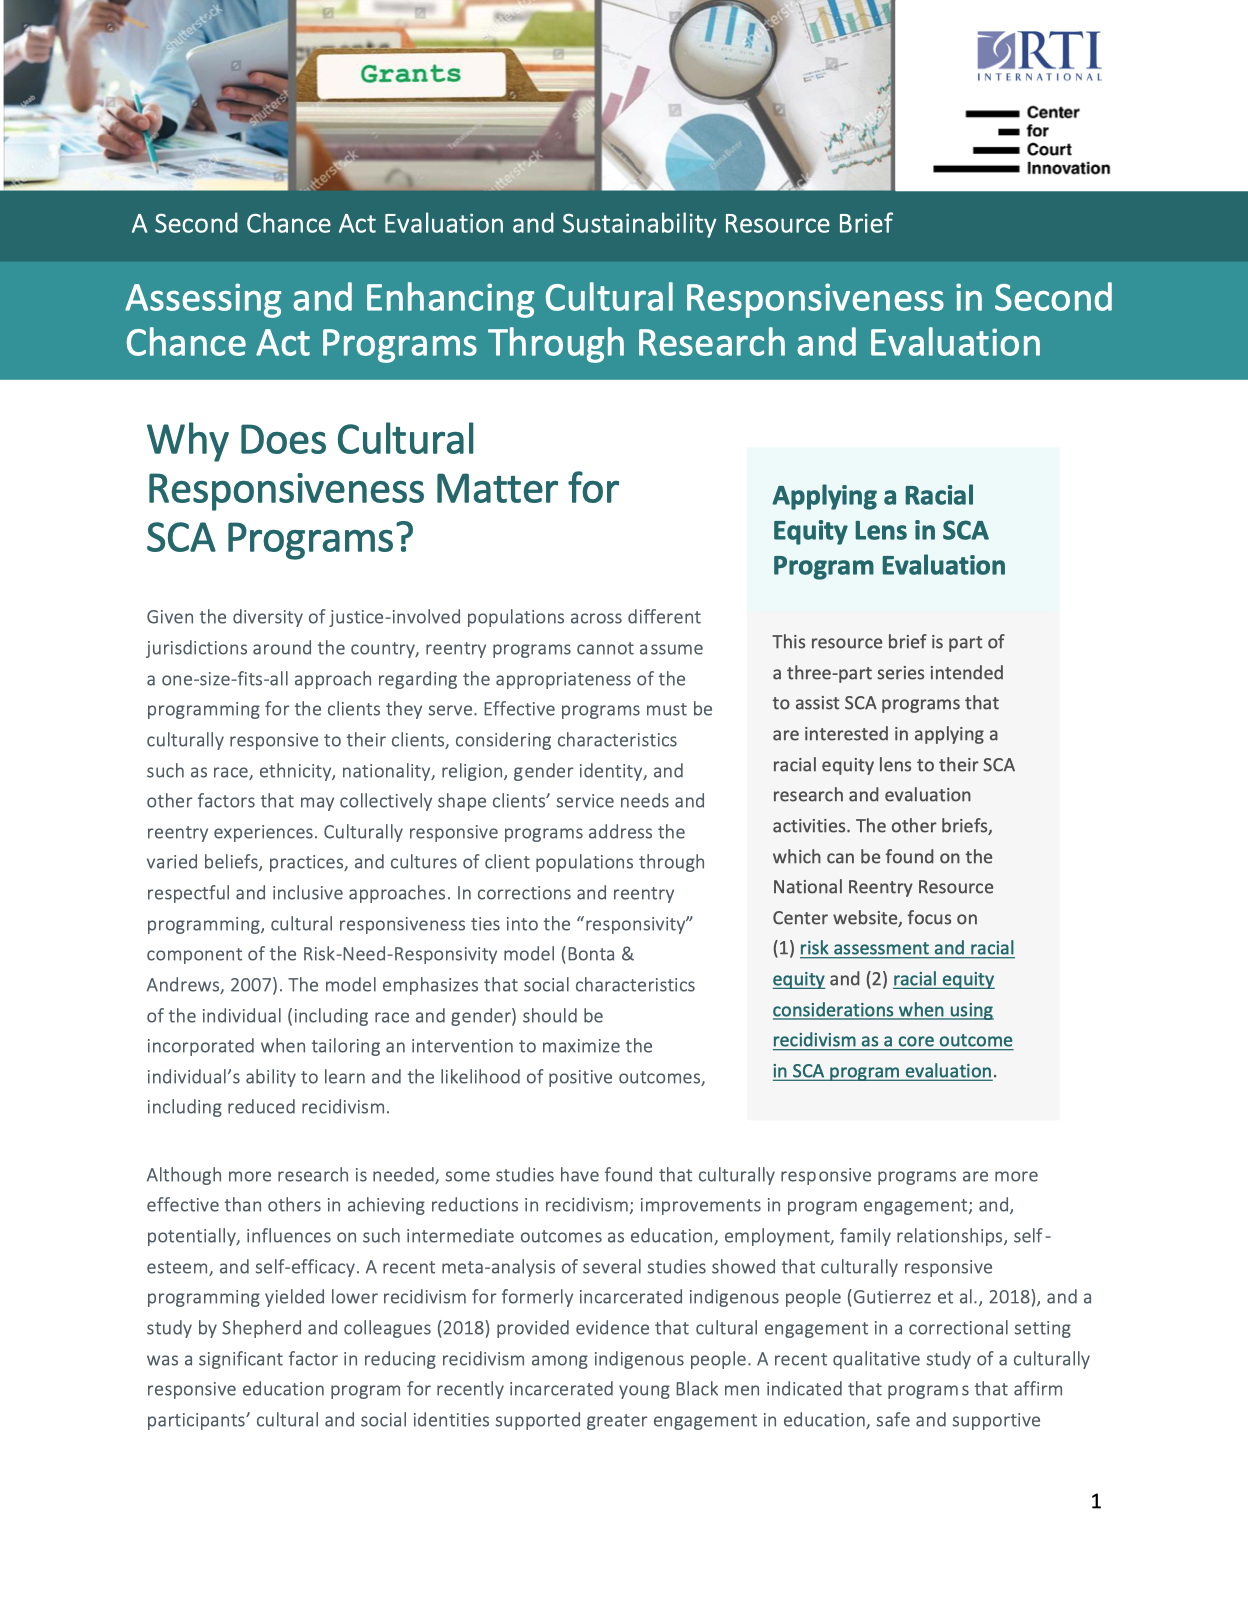 Assessing and Enhancing Cultural Responsiveness brief cover image